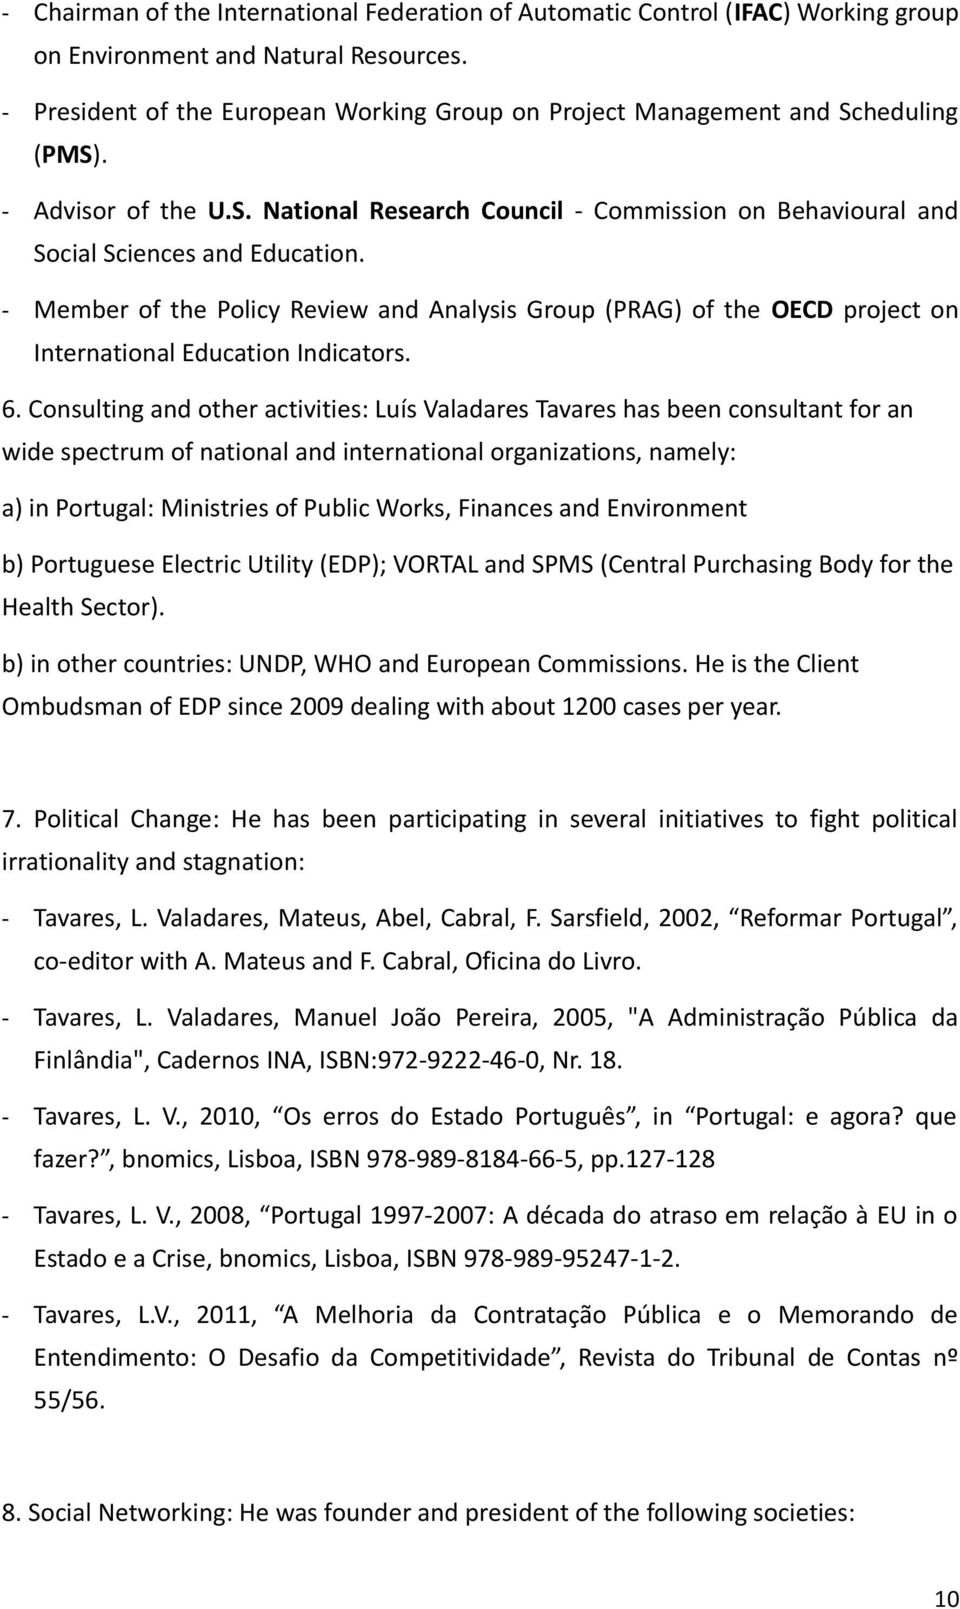 - Member of the Policy Review and Analysis Group (PRAG) of the OECD project on International Education Indicators. 6.